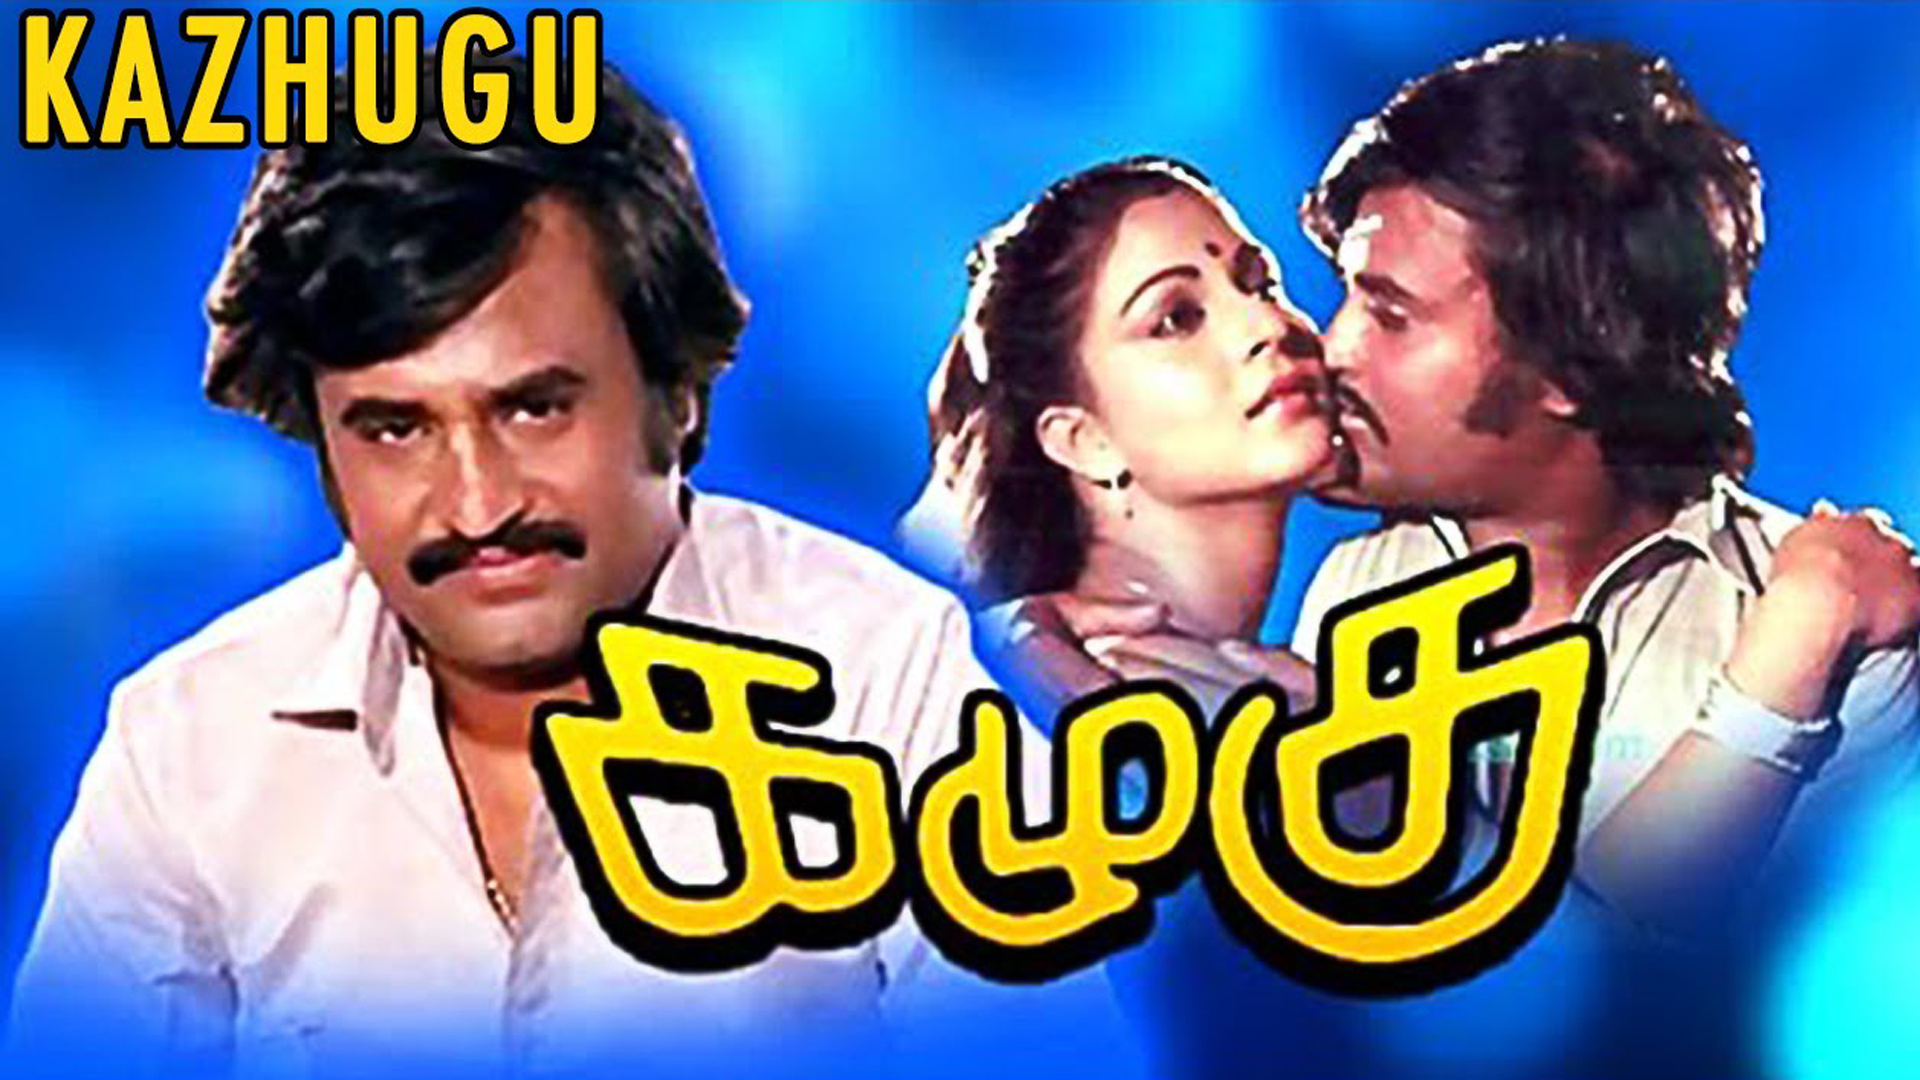 kazhugu 1981 tamil movie mp3 songs free download